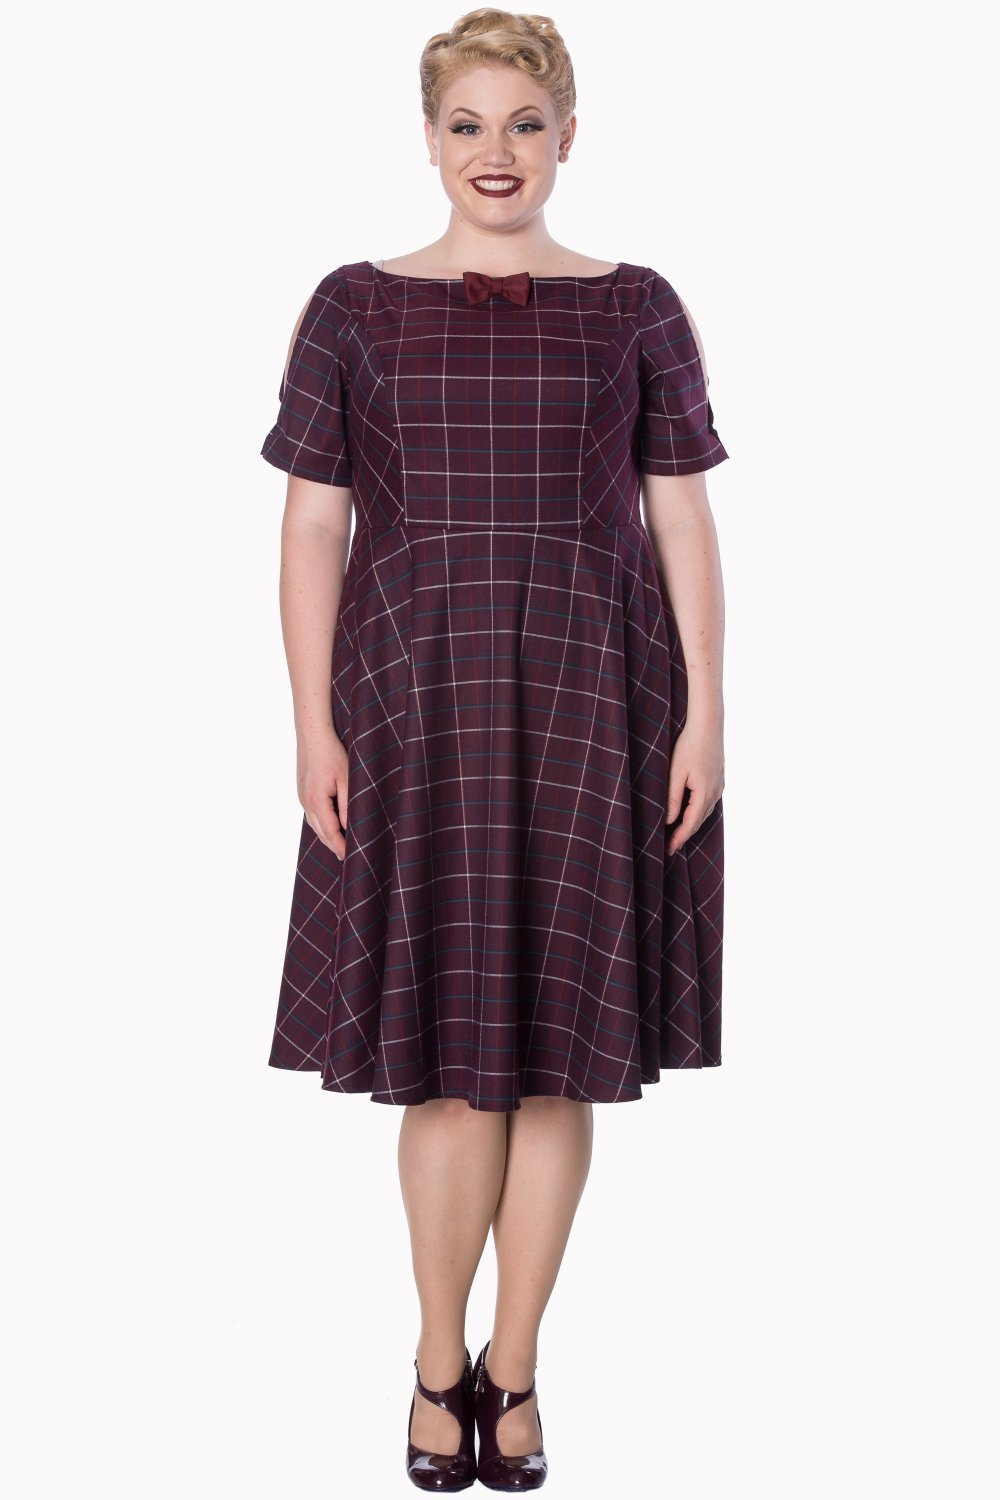 Banned Eliza Burgundy Dress (Plus Size) - Bohemian Finds